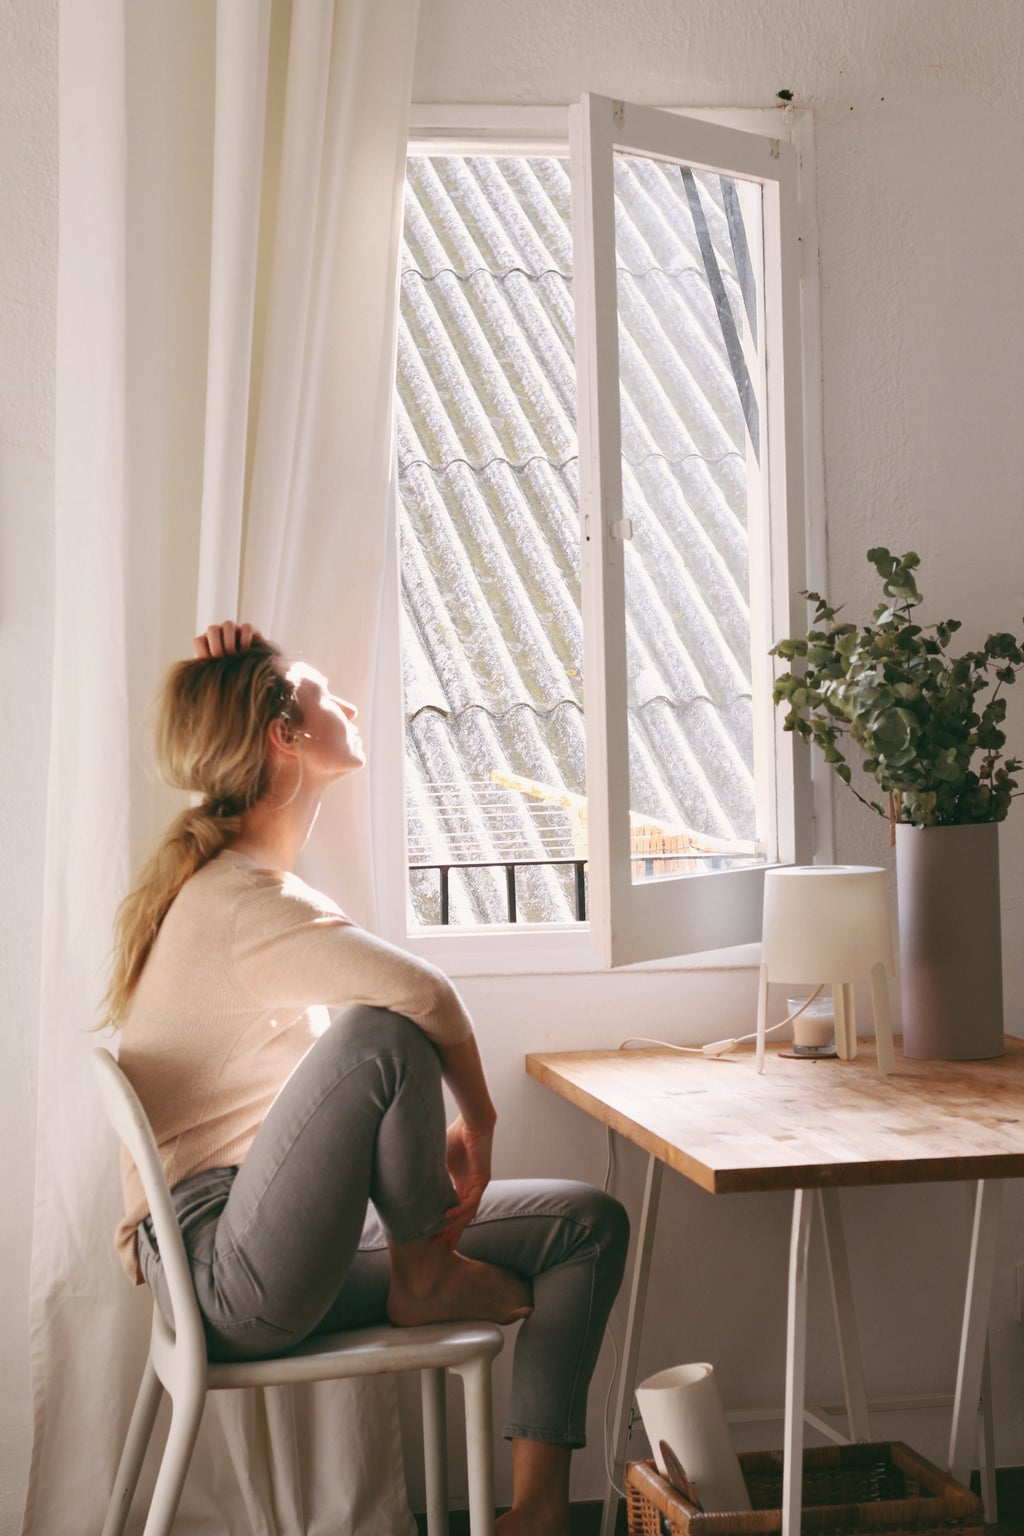 woman sitting on a chair next to a window